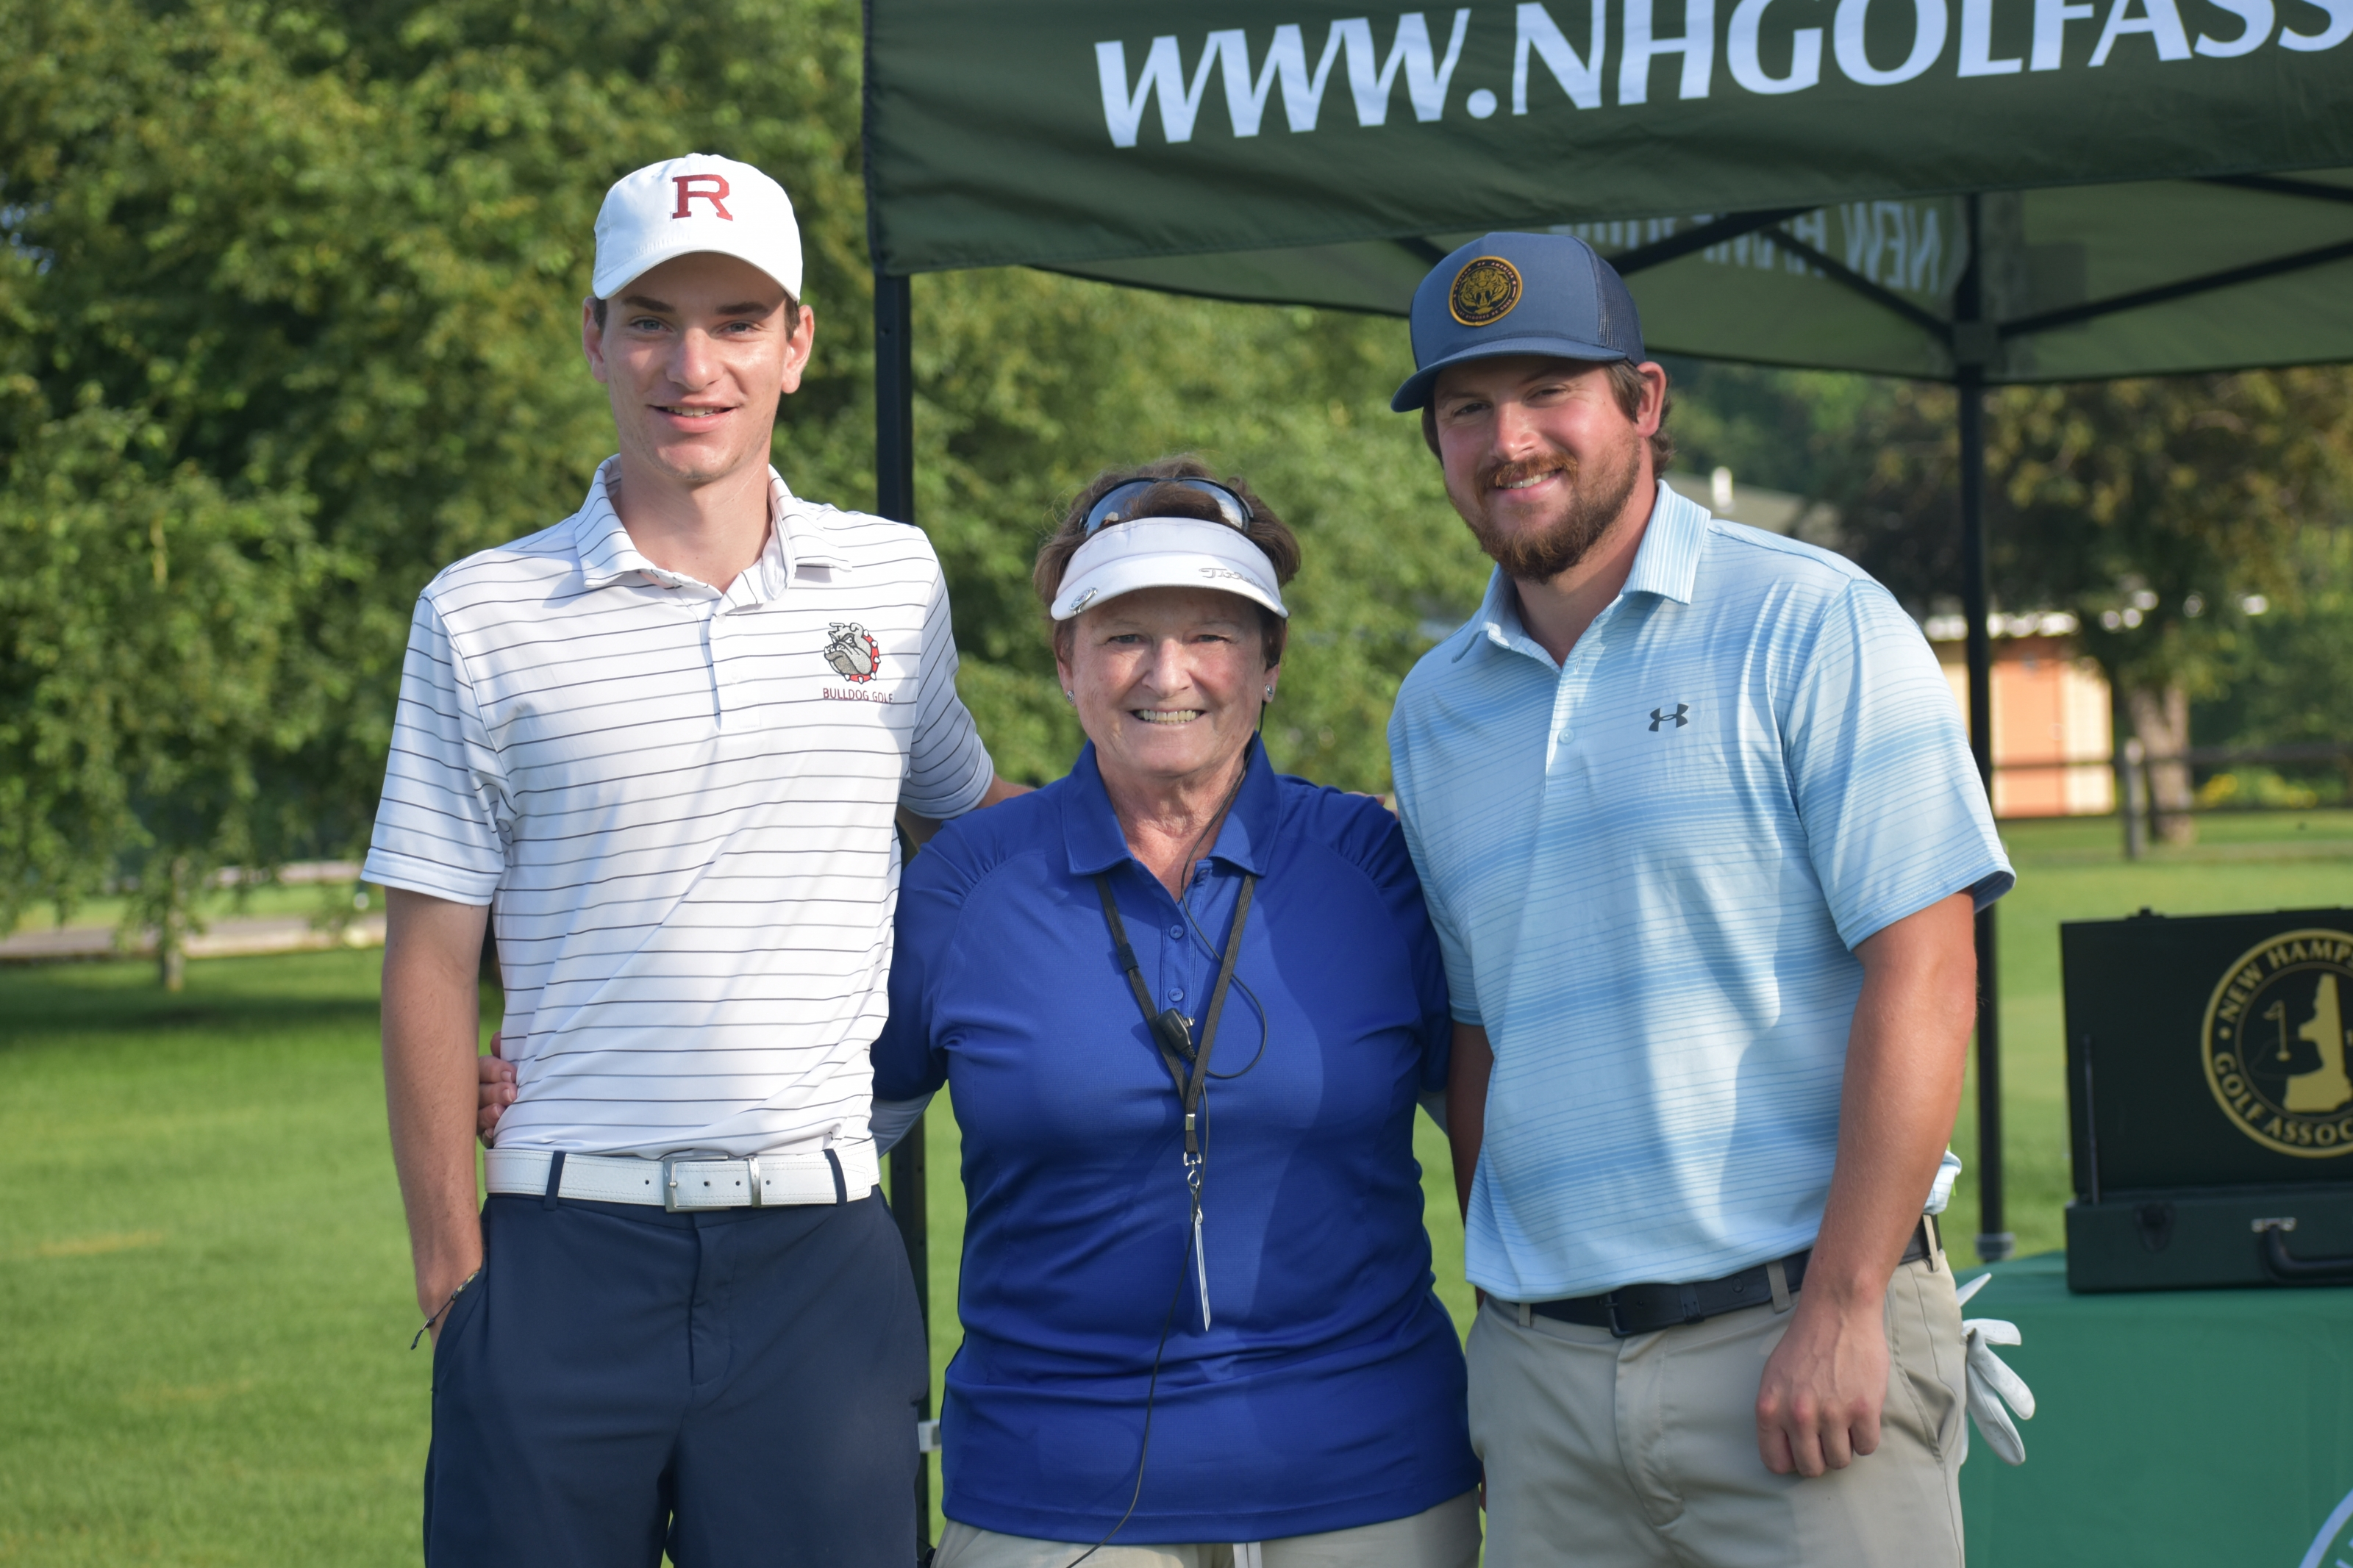 Wildman Honored with USGA Ike Grainger Award for 25 Years of Service to the Game